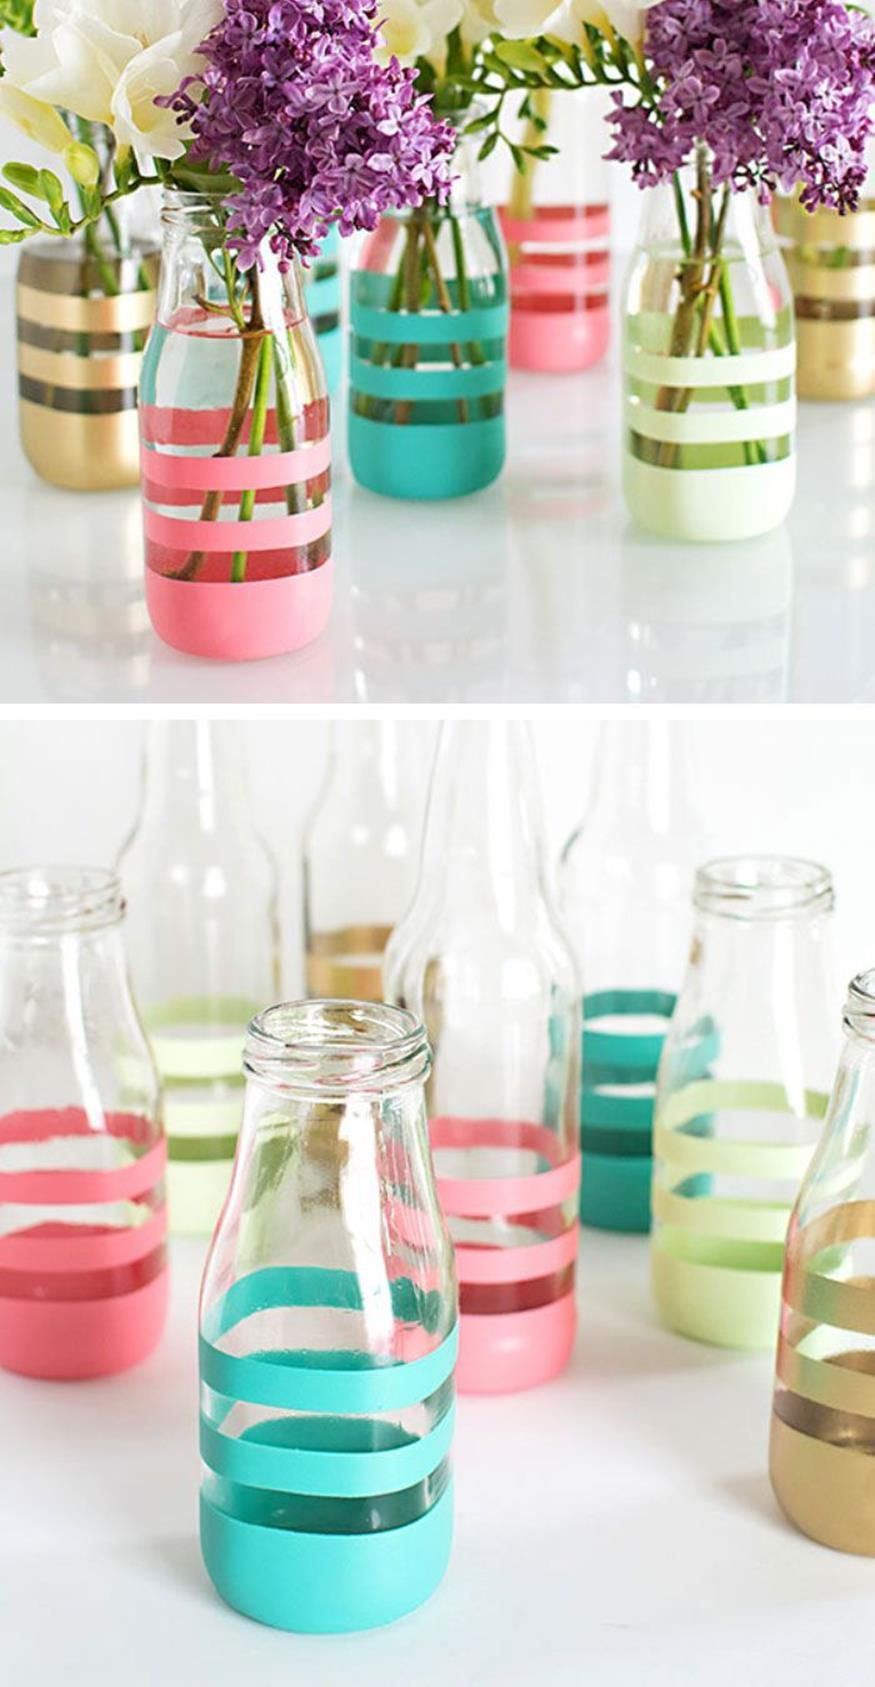 Diy easy crafts with starbucks glass bottles ideas 30